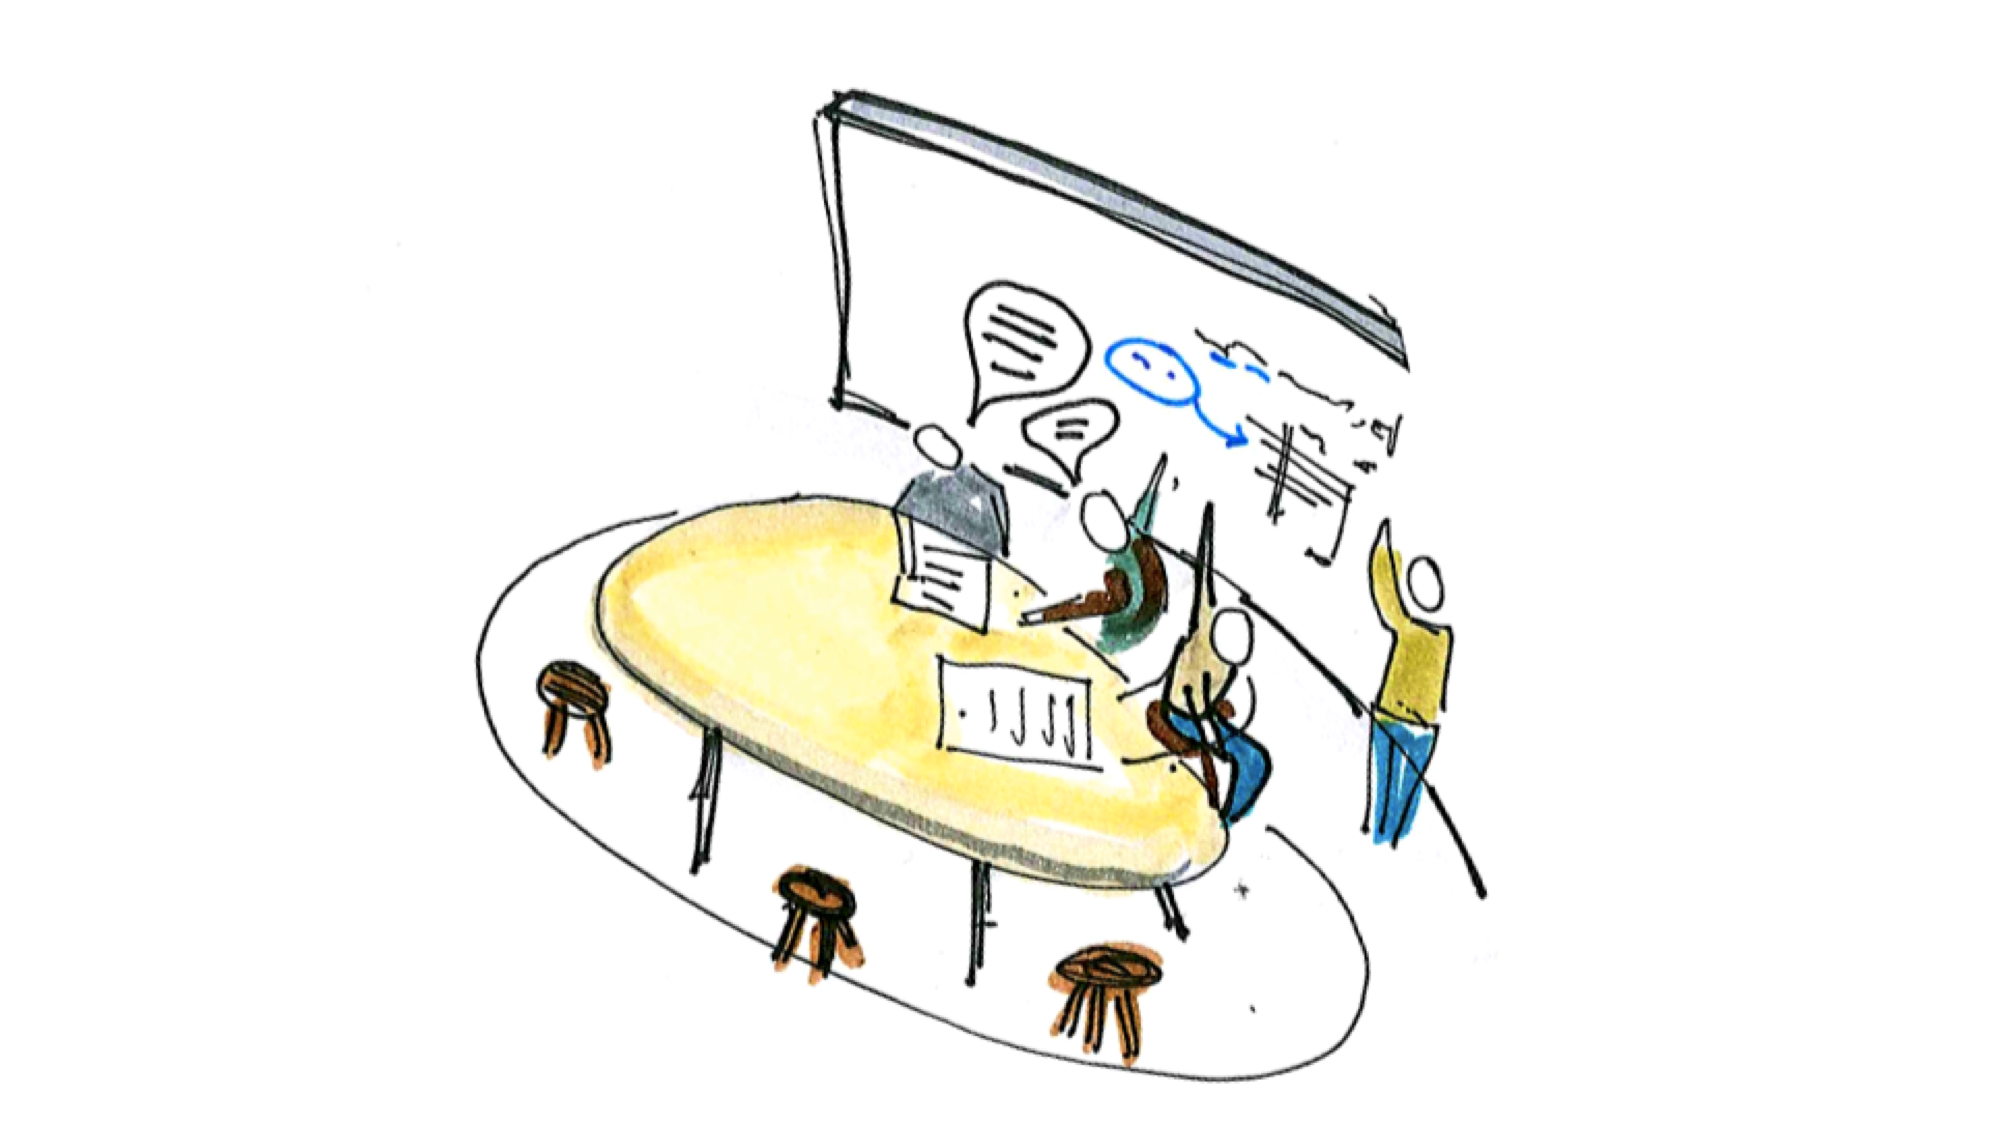 Hand drawn sketch of a small group work space, with four people working together, pointing at problems on a whiteboard and talking to each other